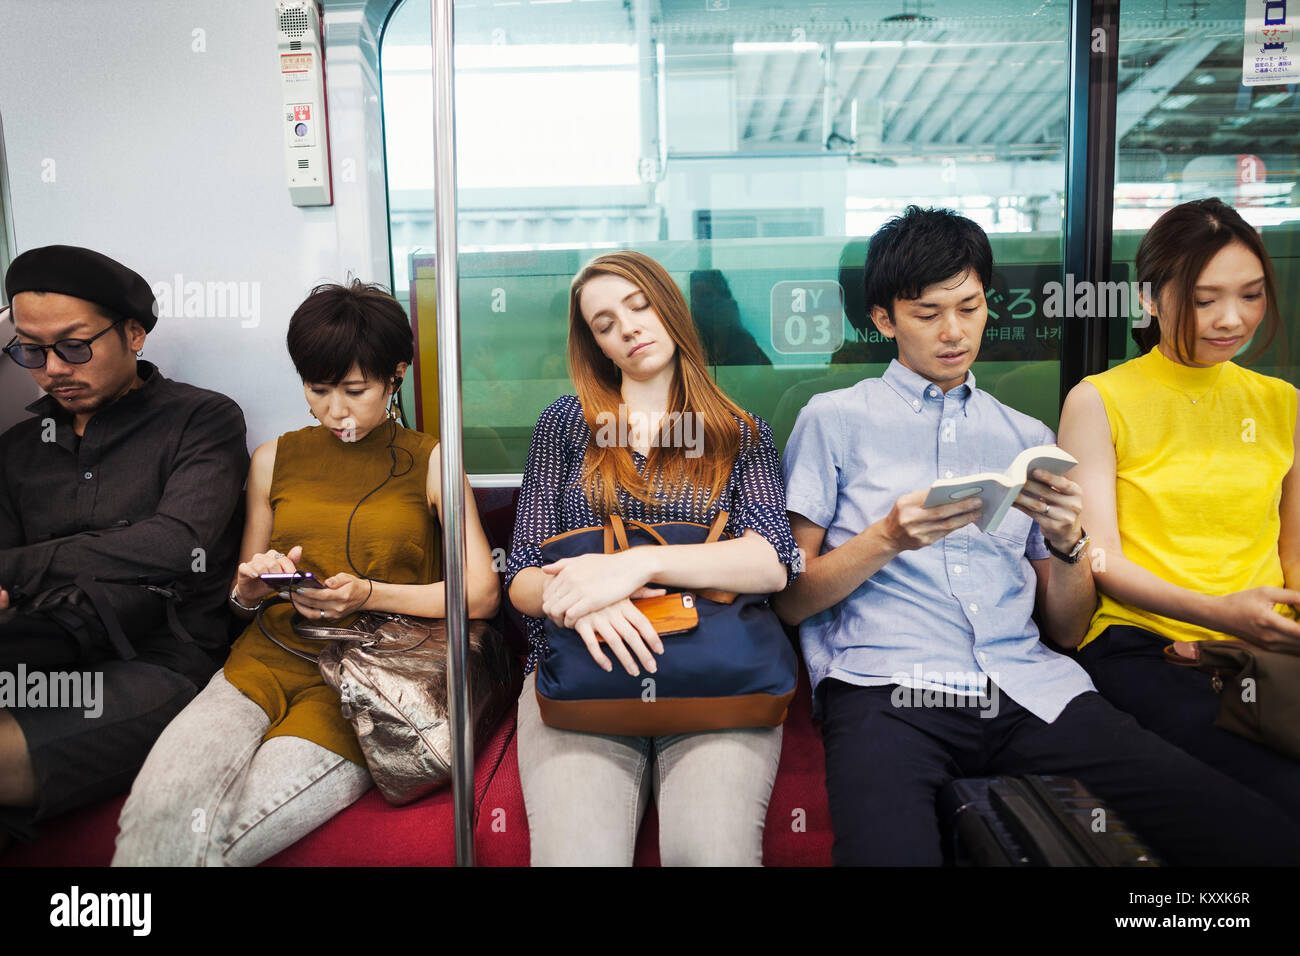 People Reading On Subway Stock Photos & People Reading On ...